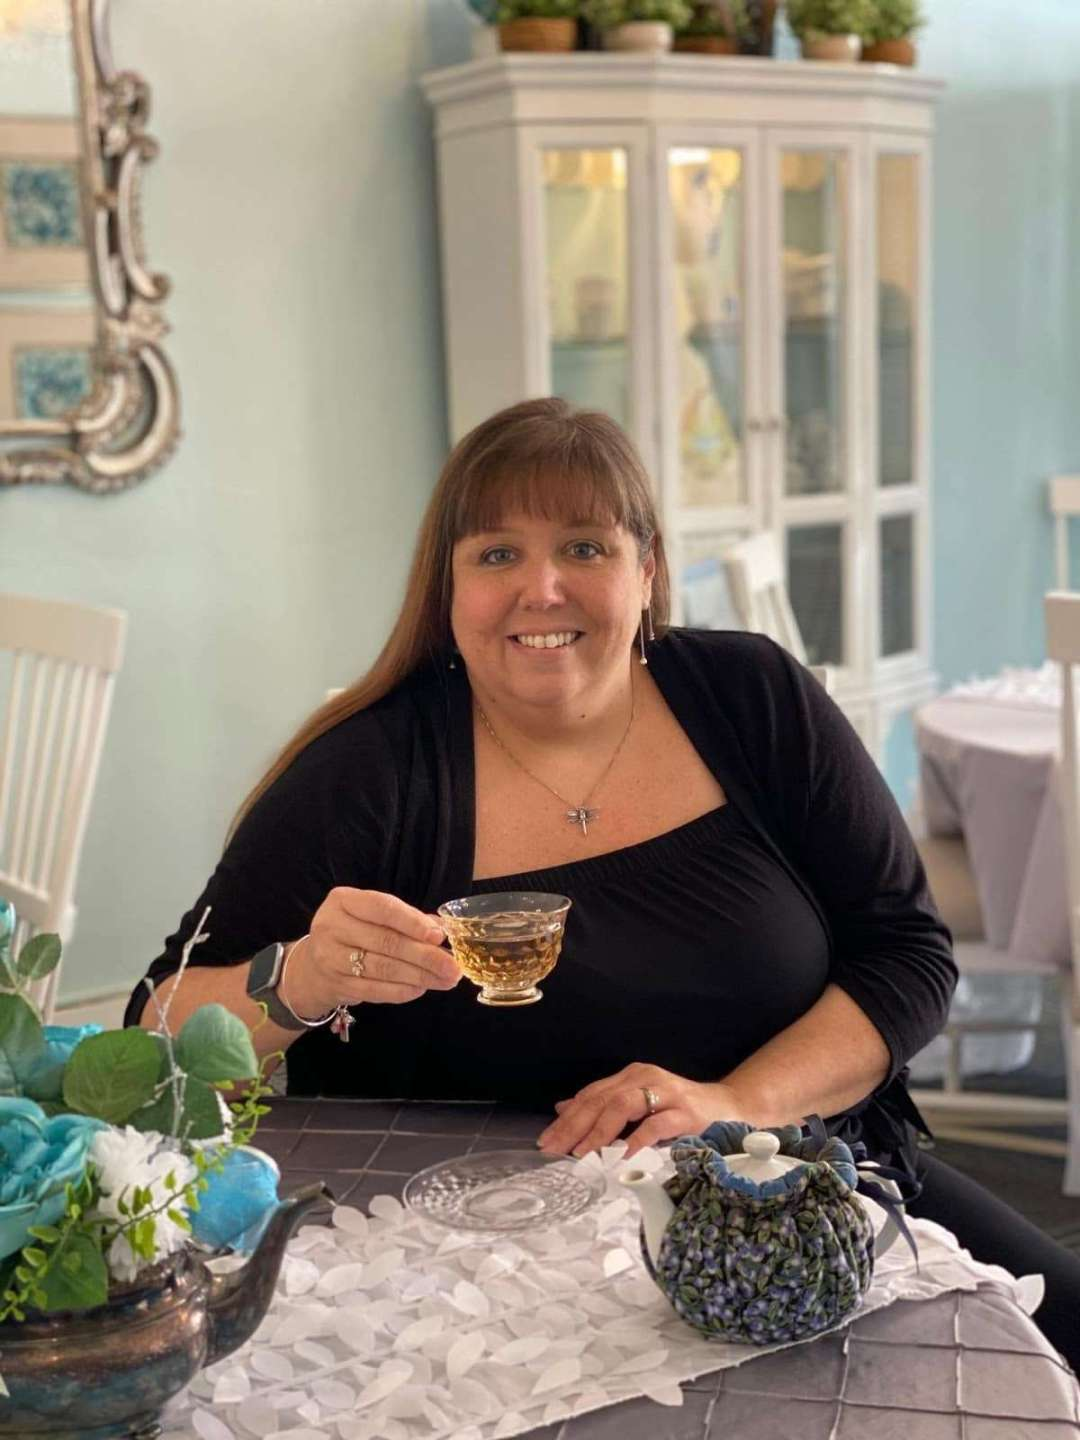 A Love Story of Tea and Business - Photo of Kelly drinking tea